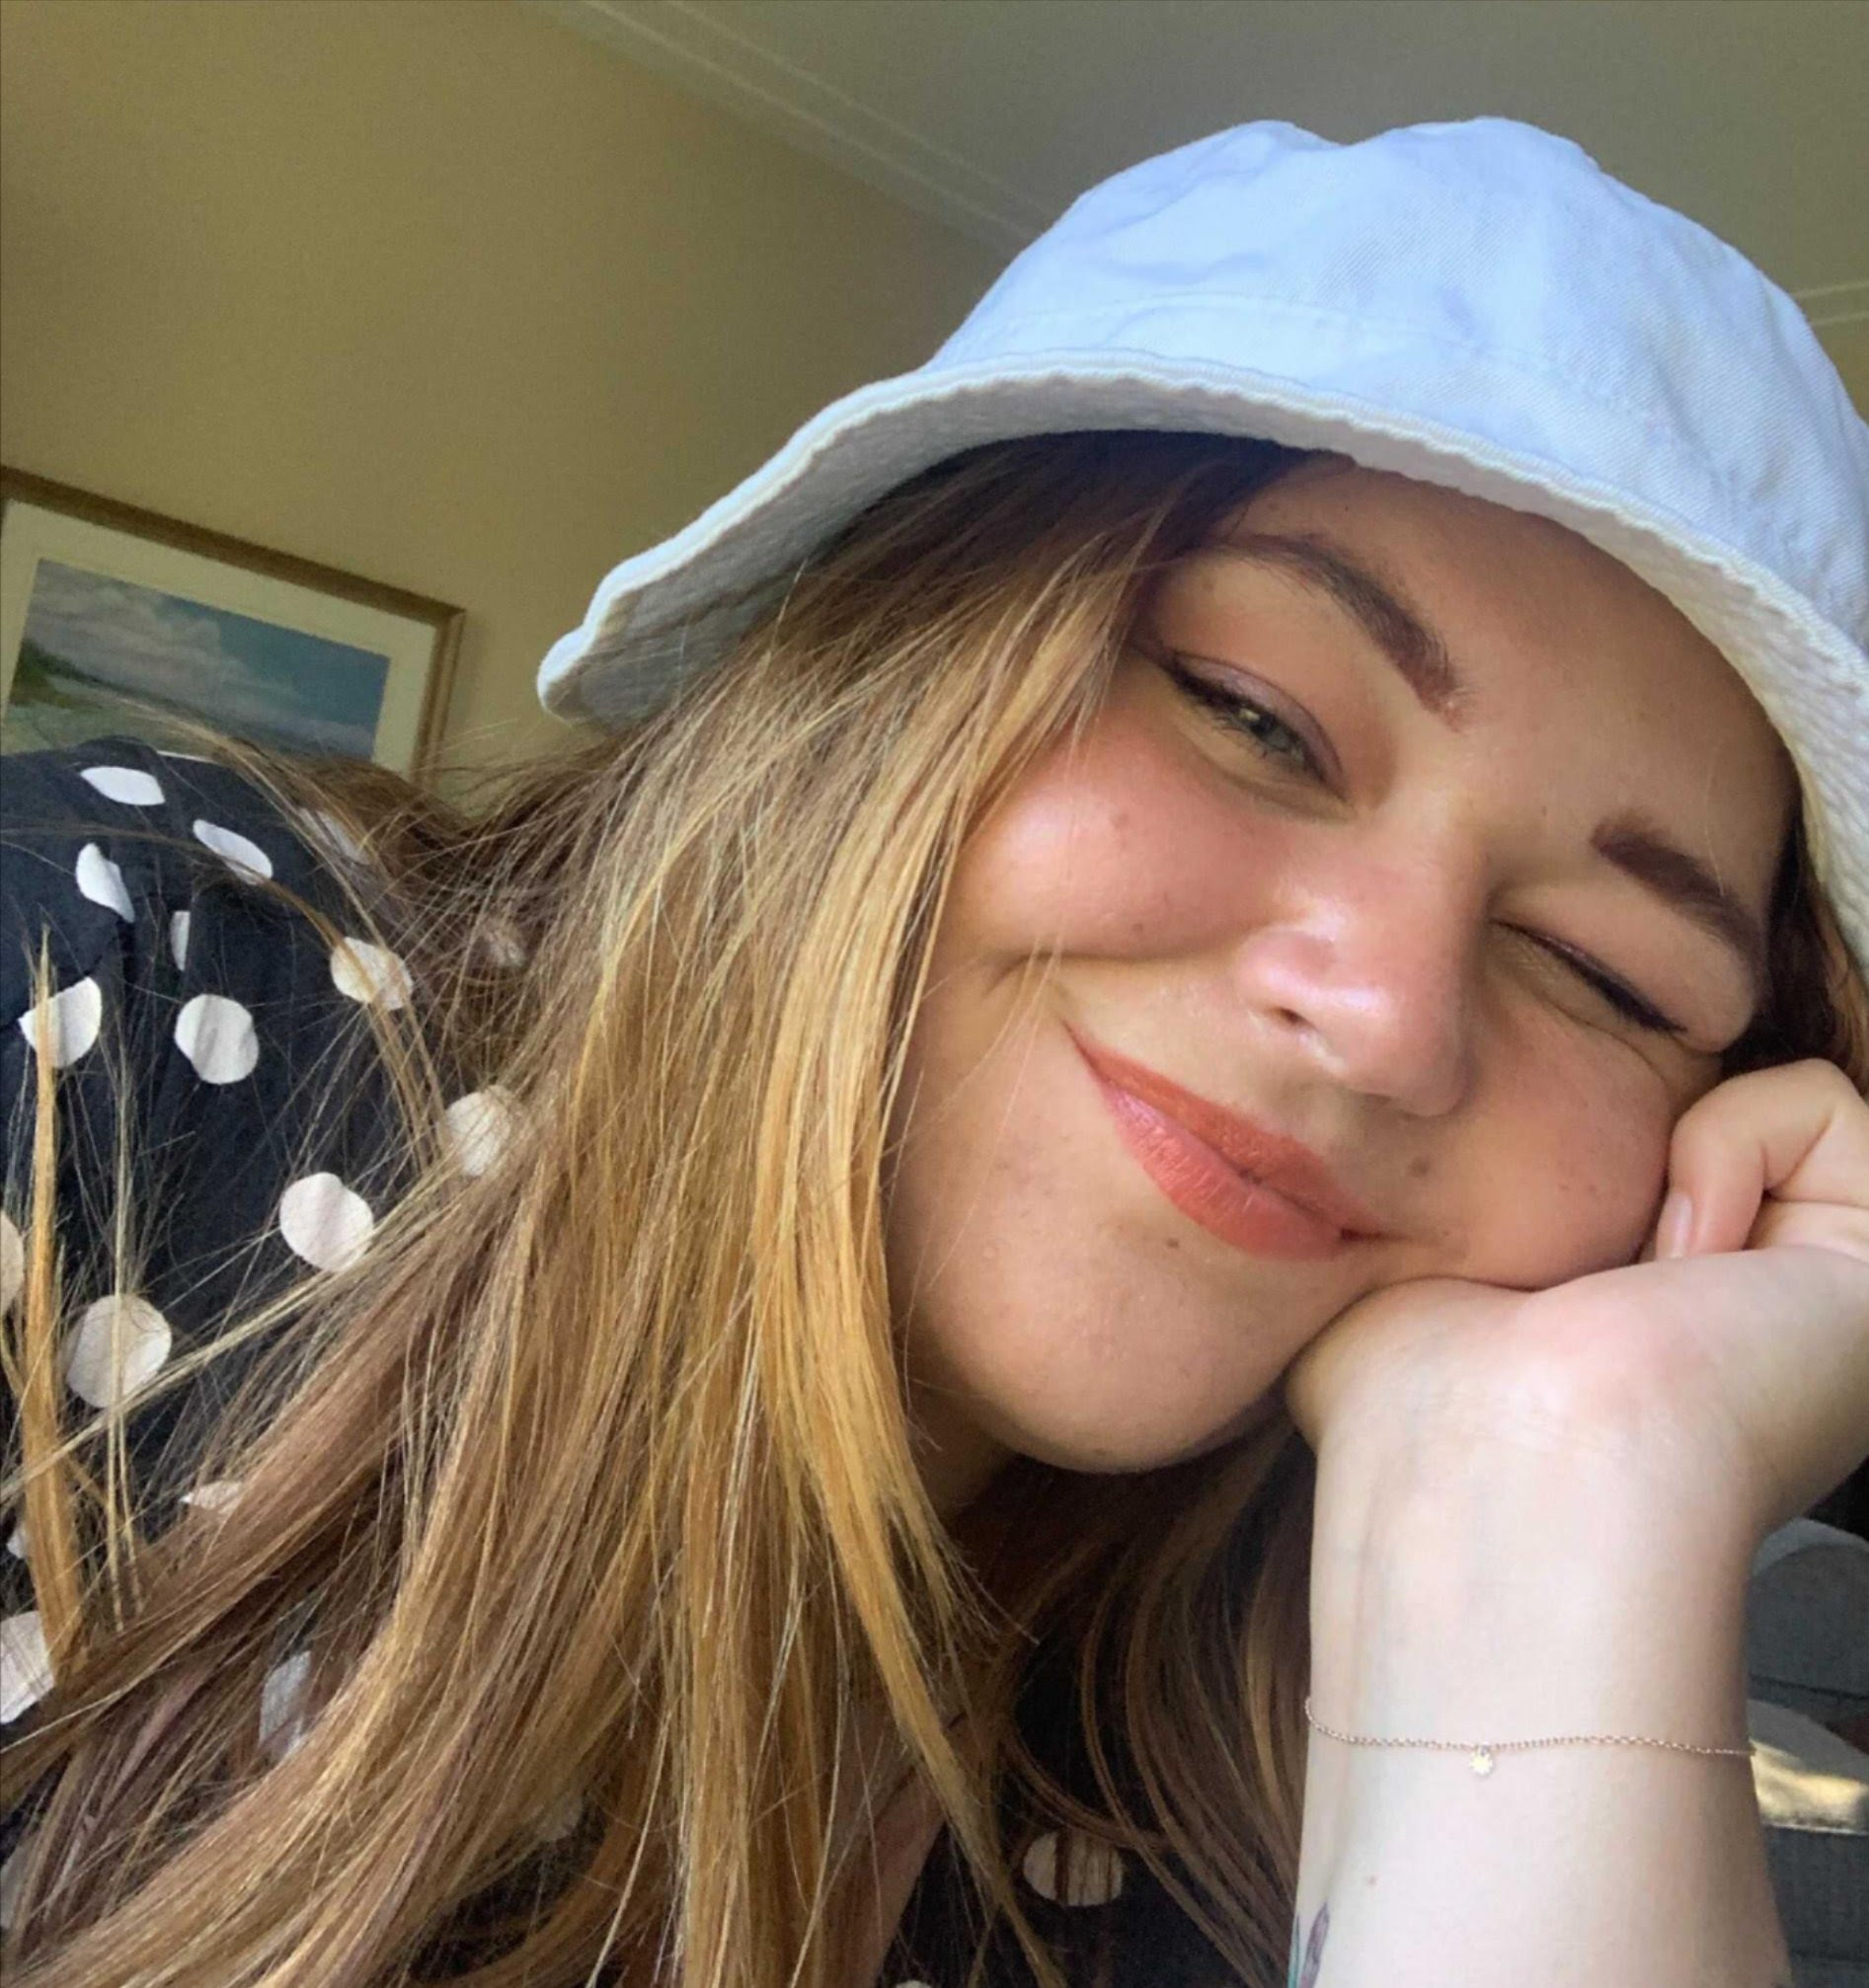 kristina smiling in a bucket hat